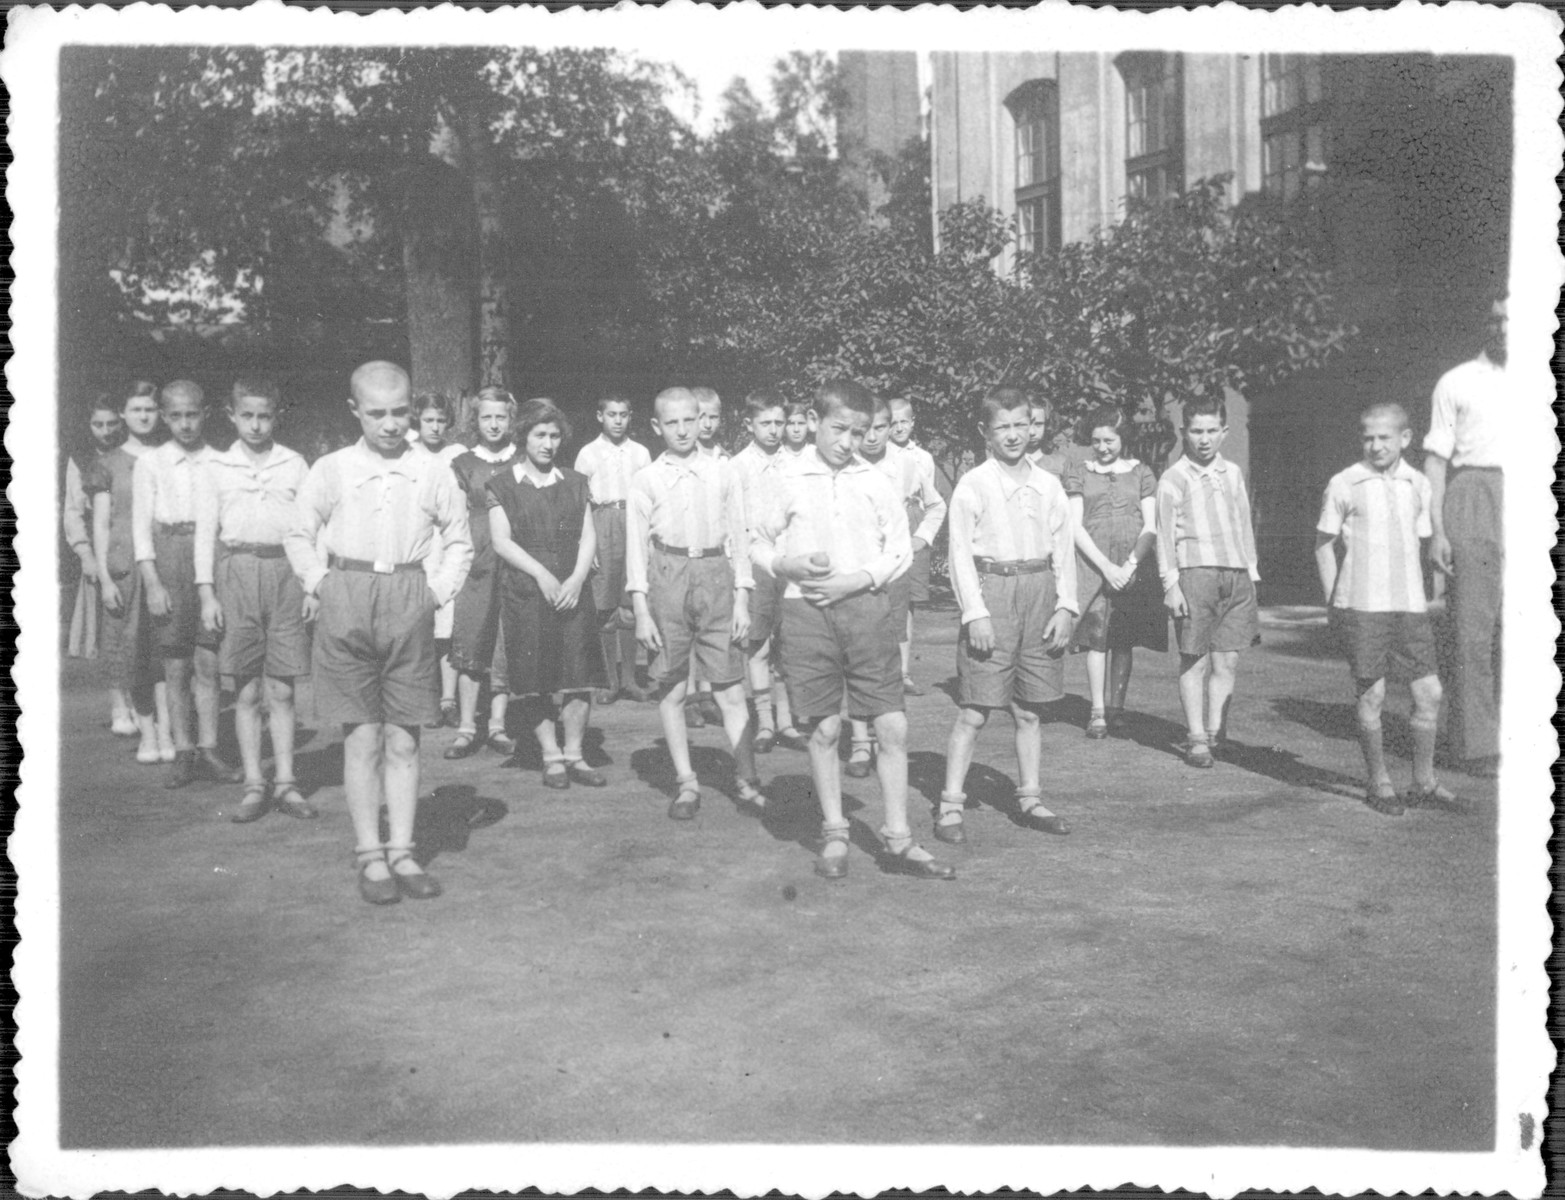 Children line up for morning gymnastics on the grounds of the Korczak orphanage.